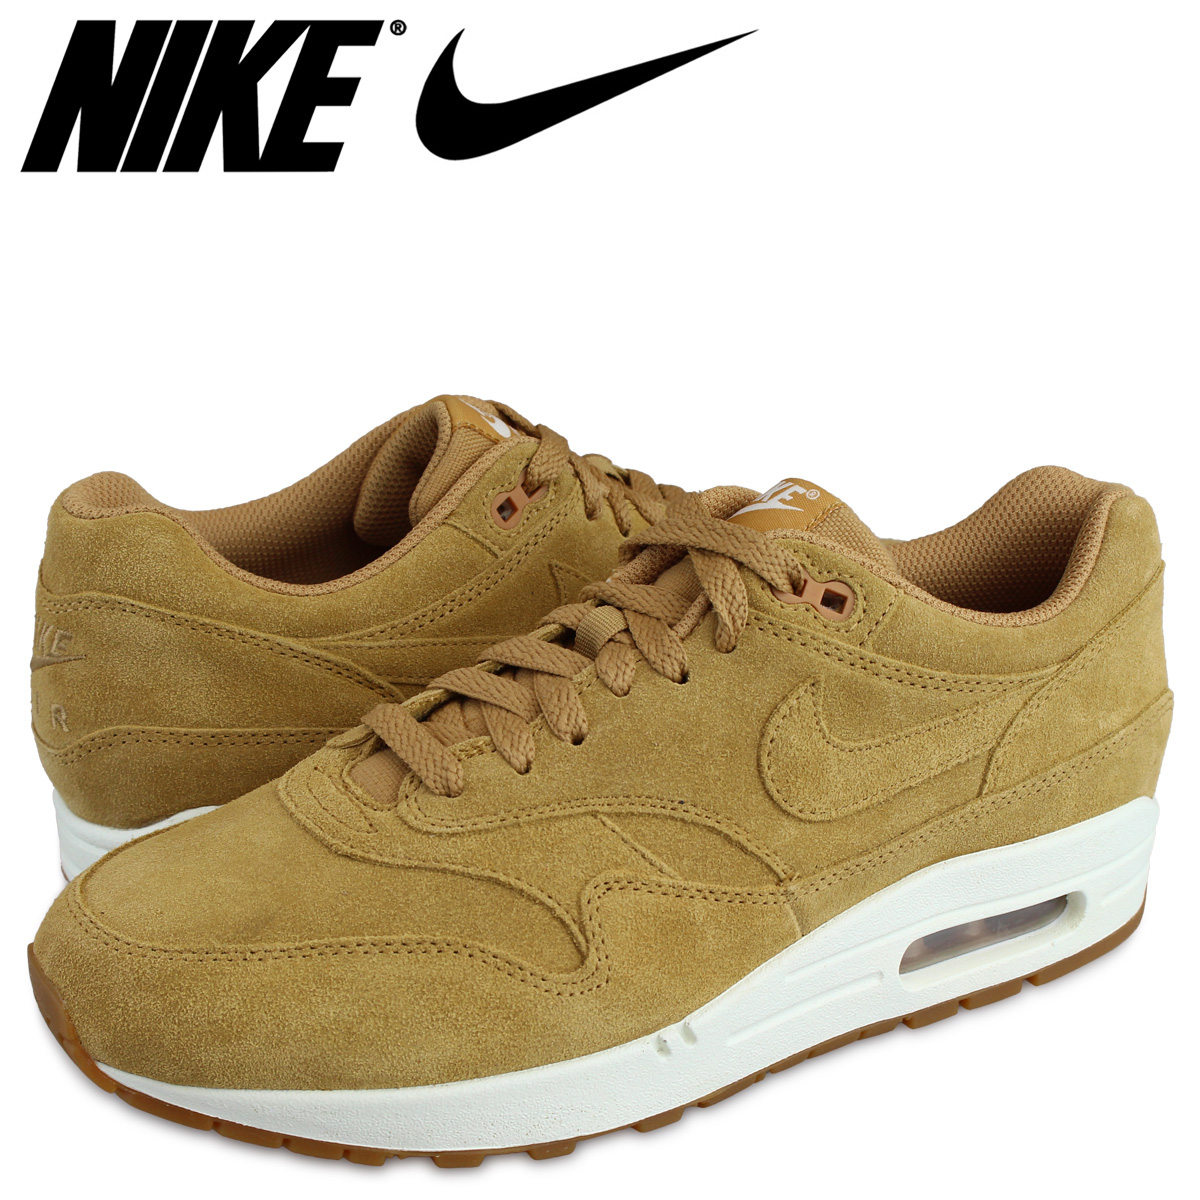 new styles 07518 cd516 Nike NIKE Air Max 1 premium sneakers AIR MAX 1 PREMIUM WHEAT 875,844-203  men s ...